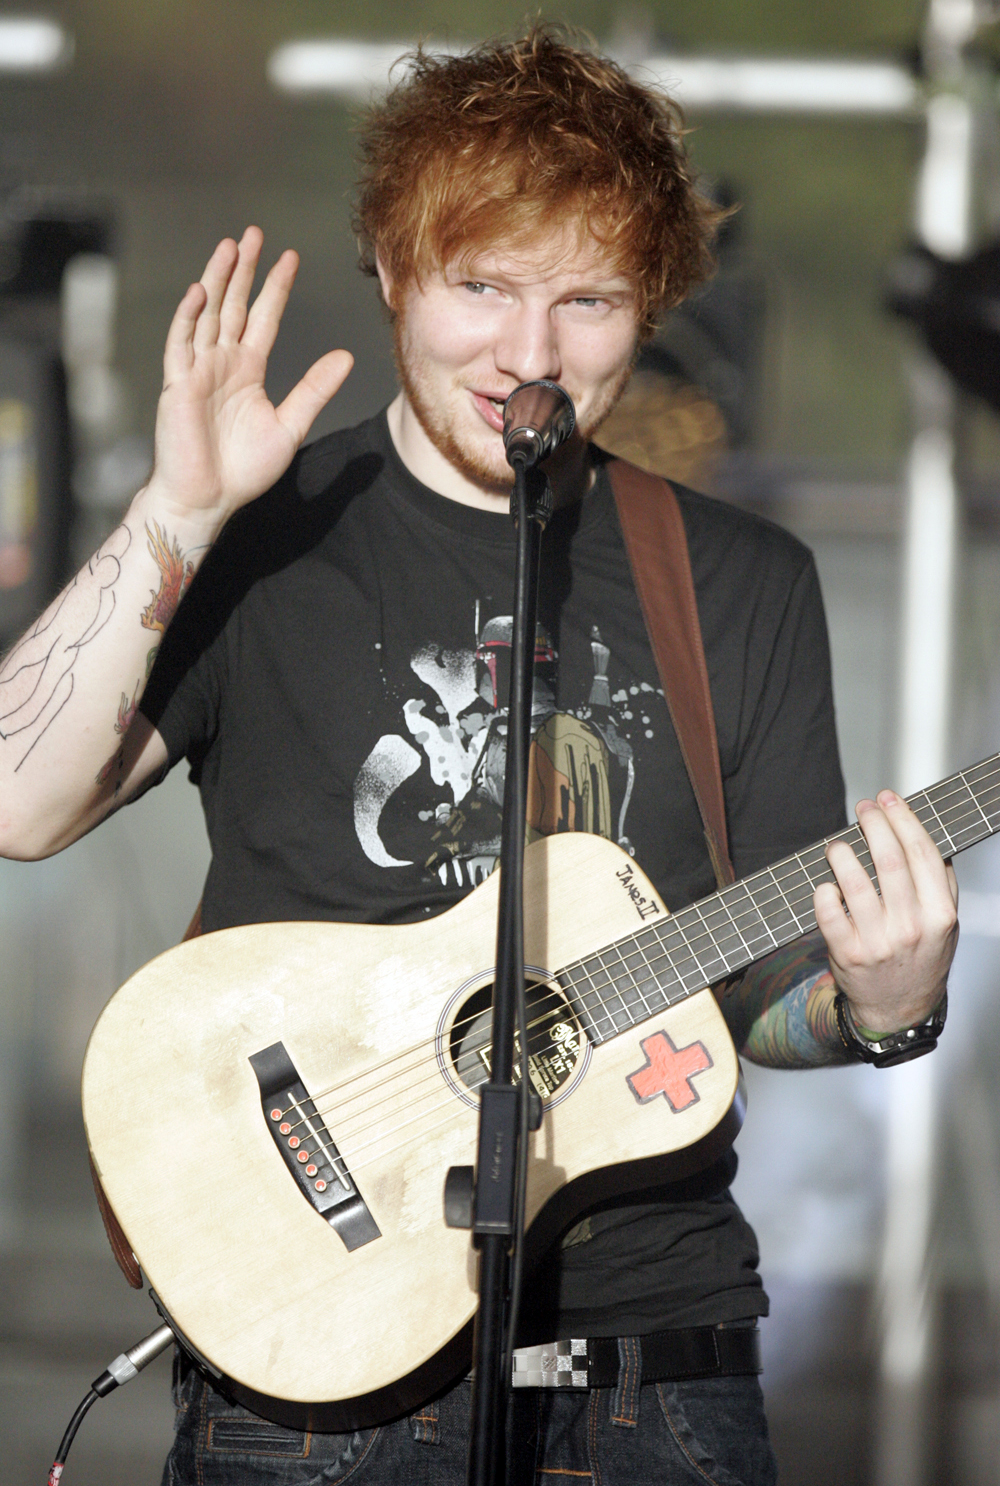 6 Facts about Ed Sheeran | TFE Times